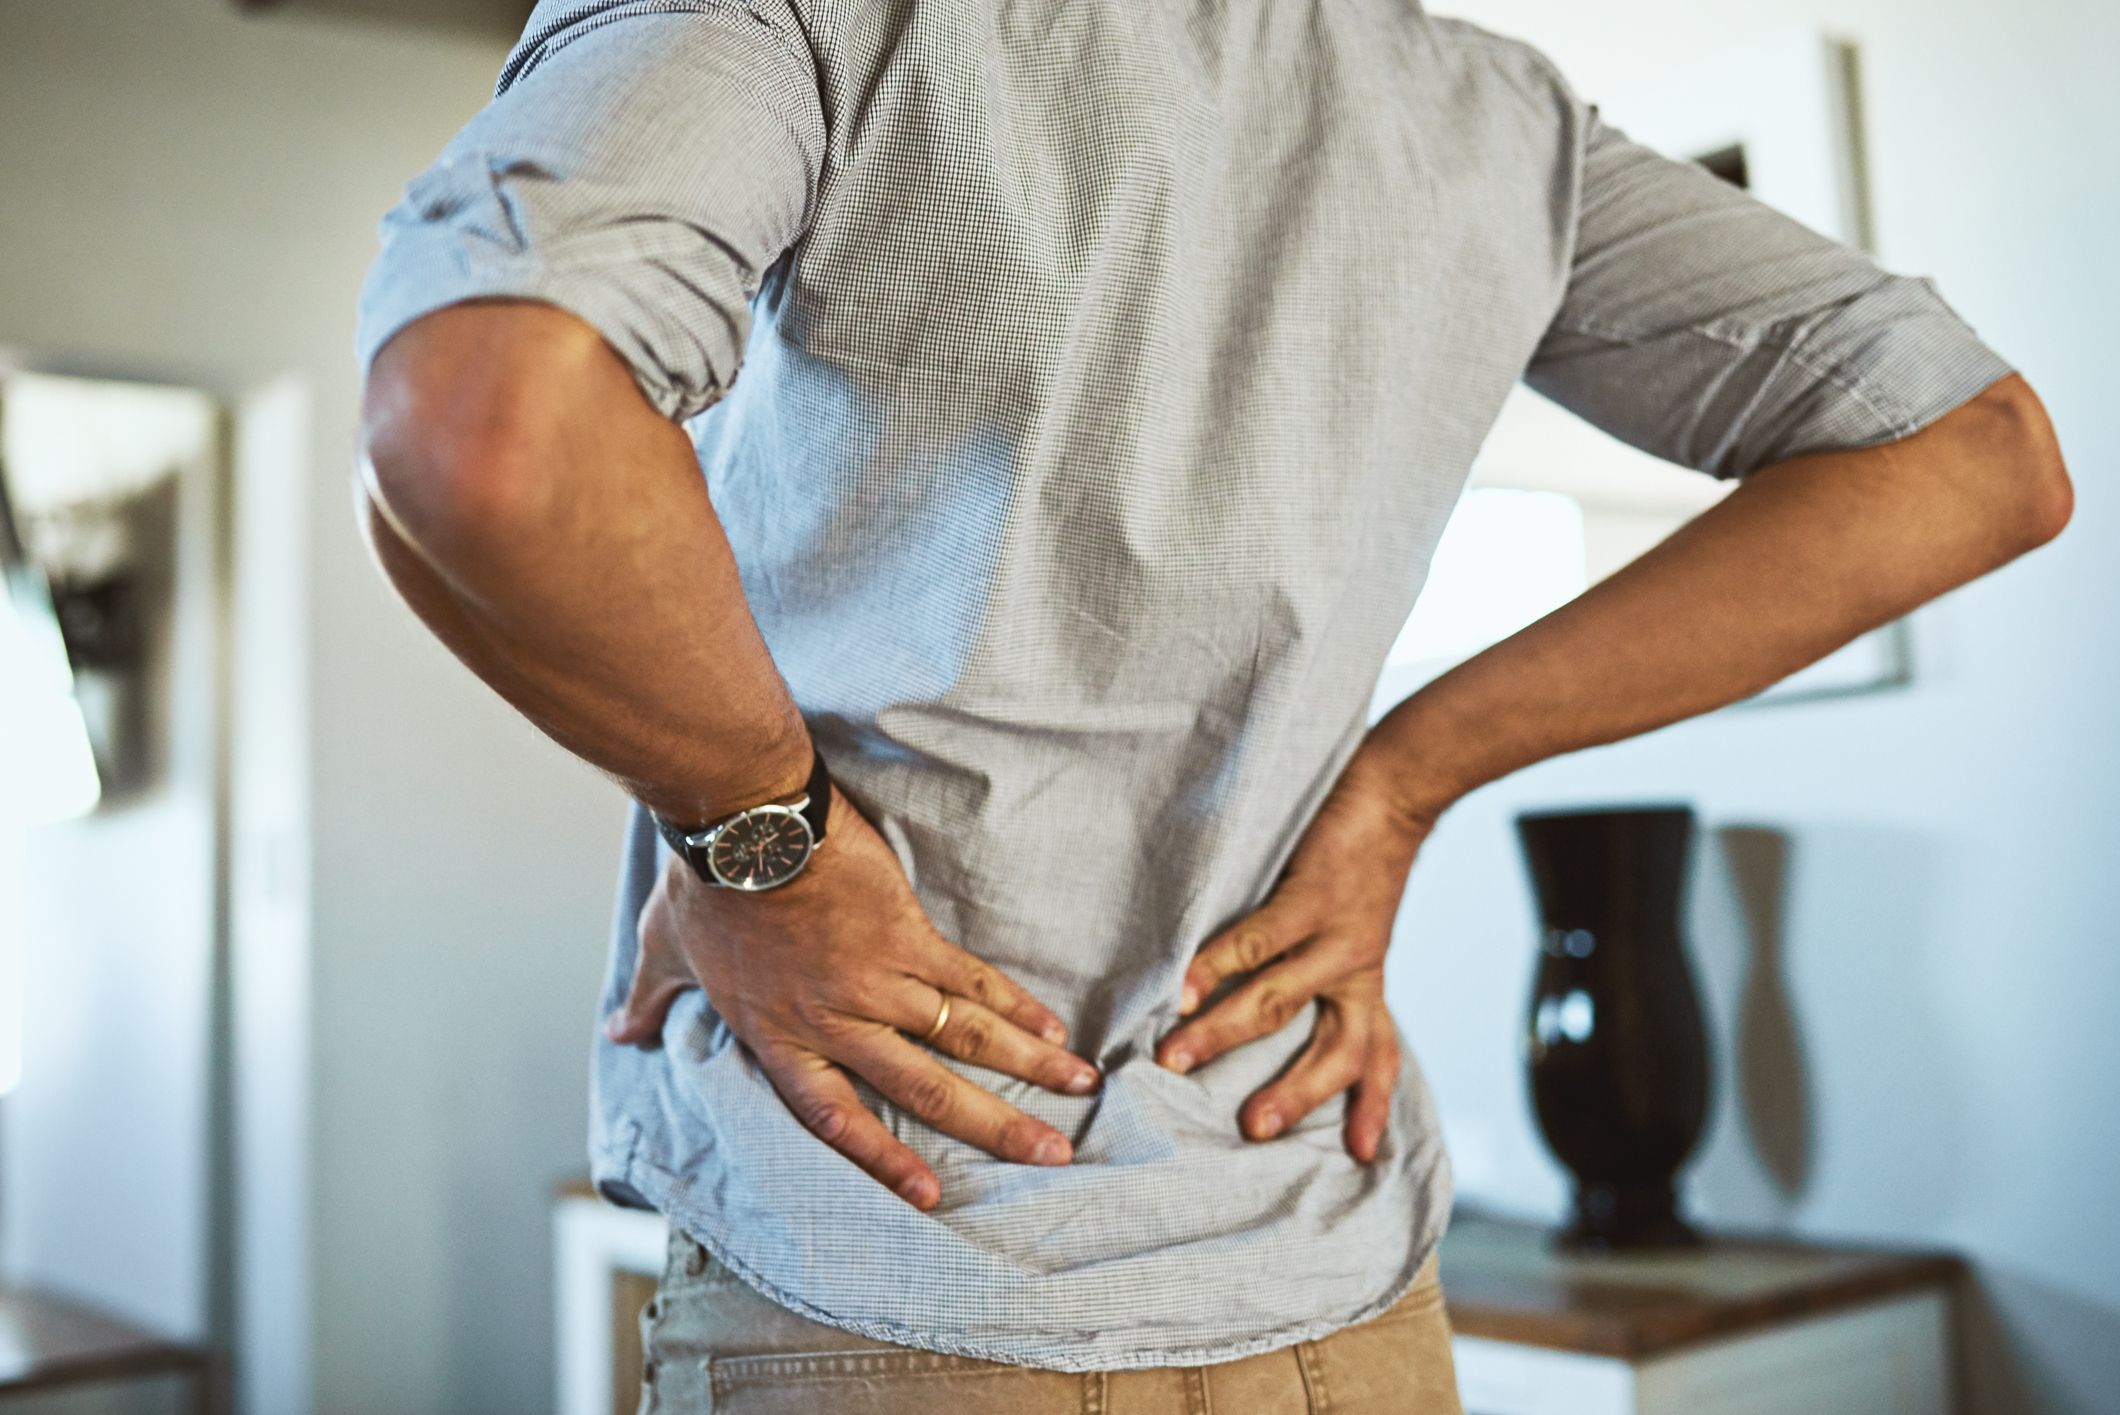 The Little-Known Muscle That's Probably Making Your Back Hurt